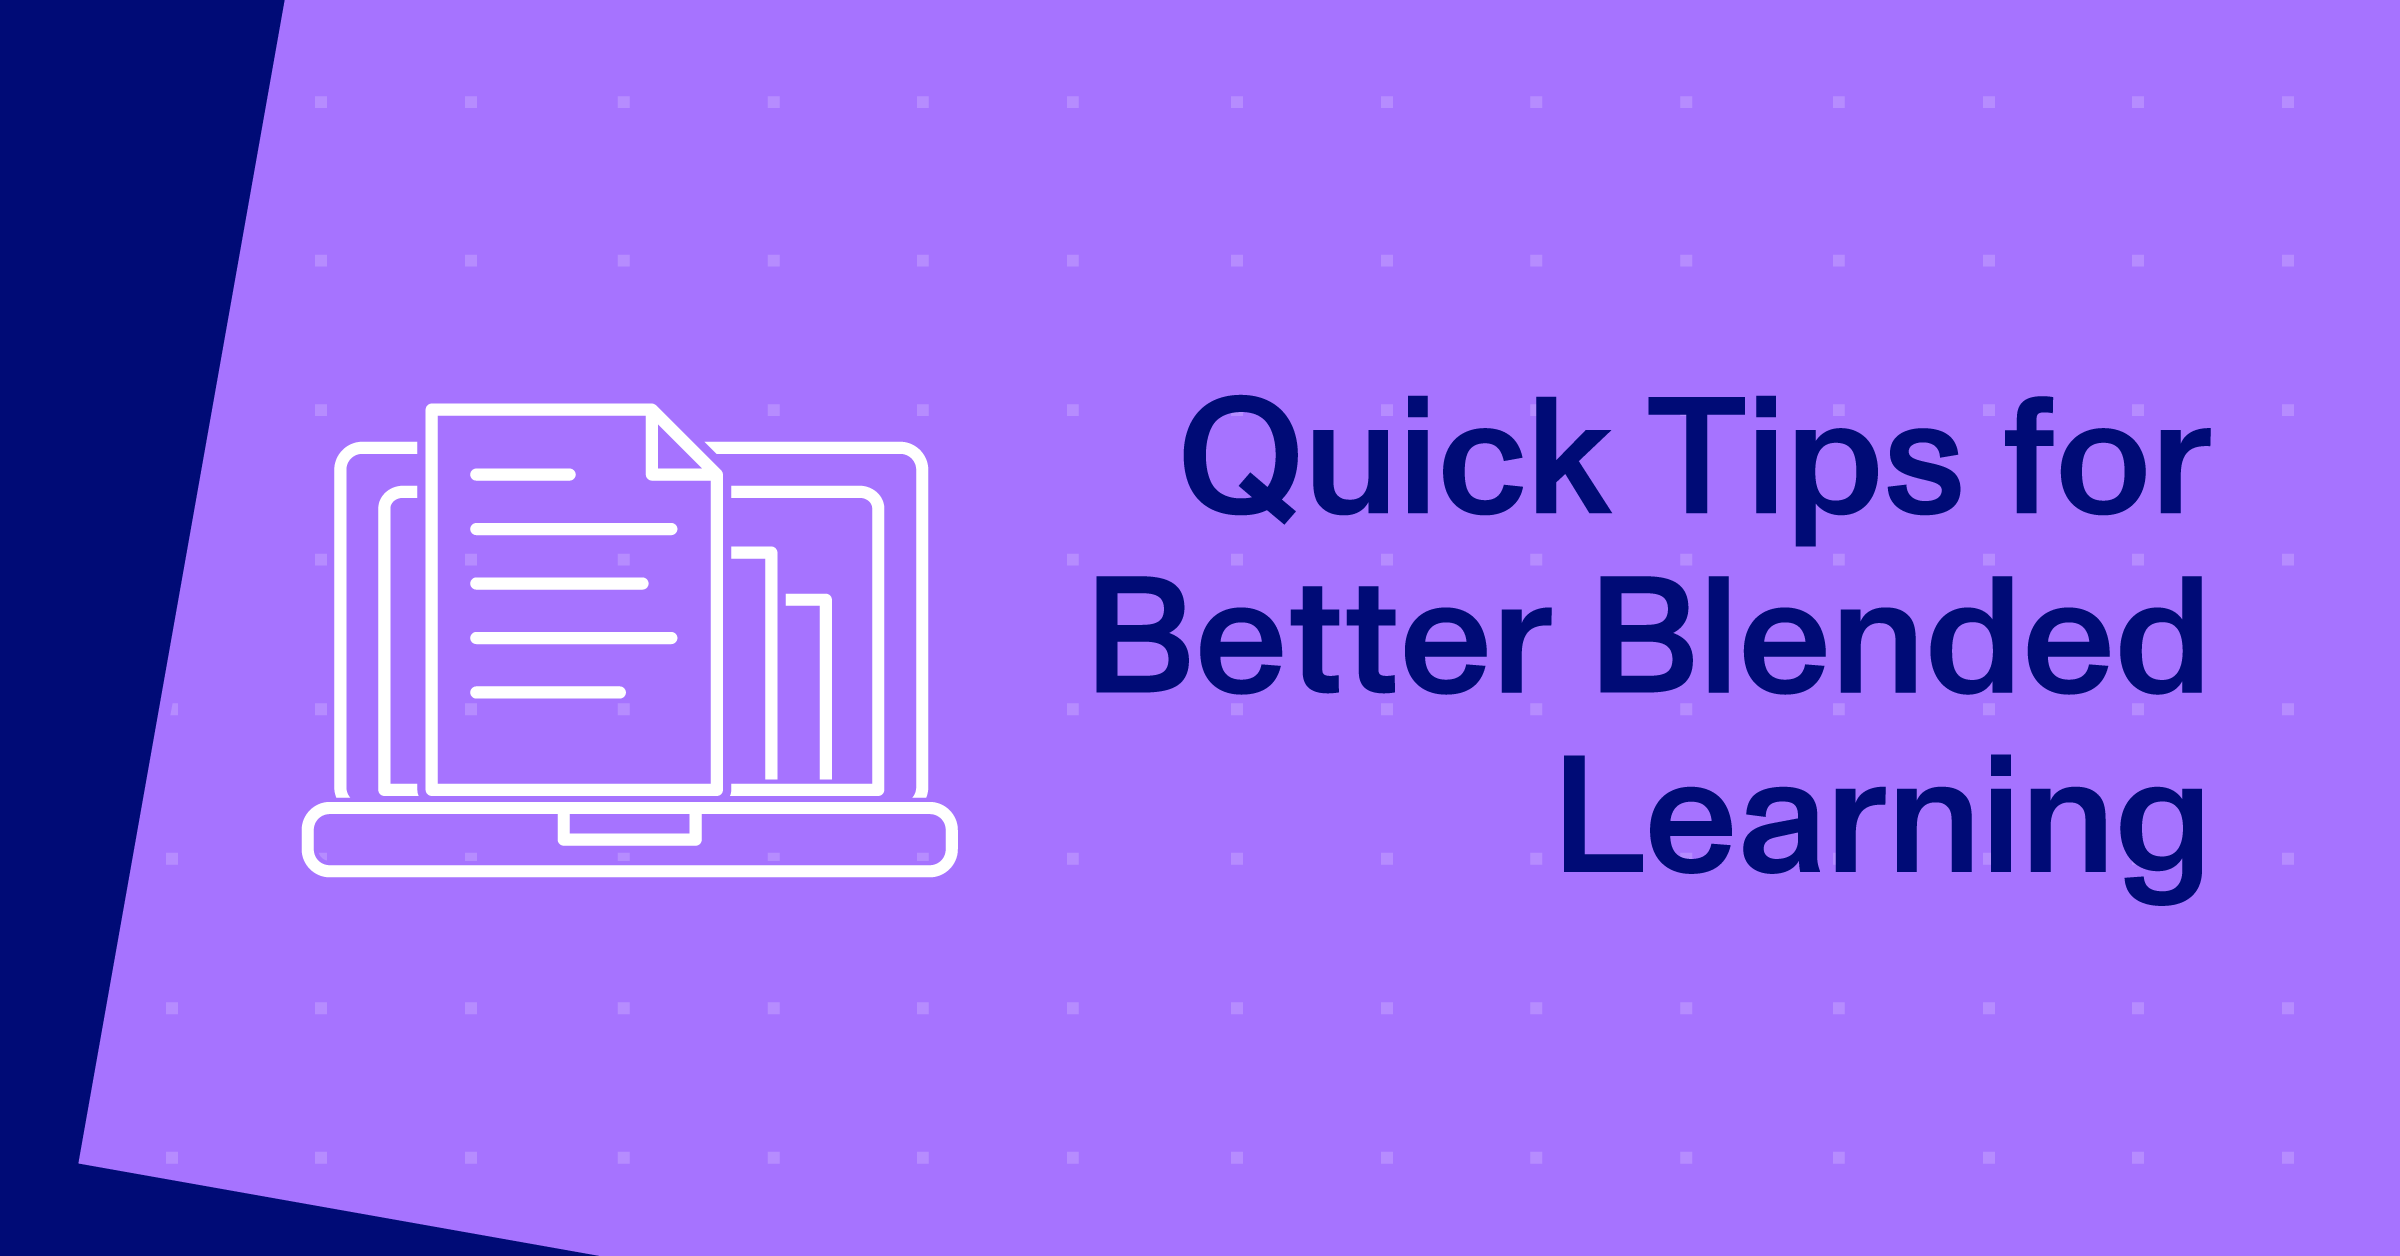 Thumbnail with Title and Icon: Quick Tips for Better Blended Learning